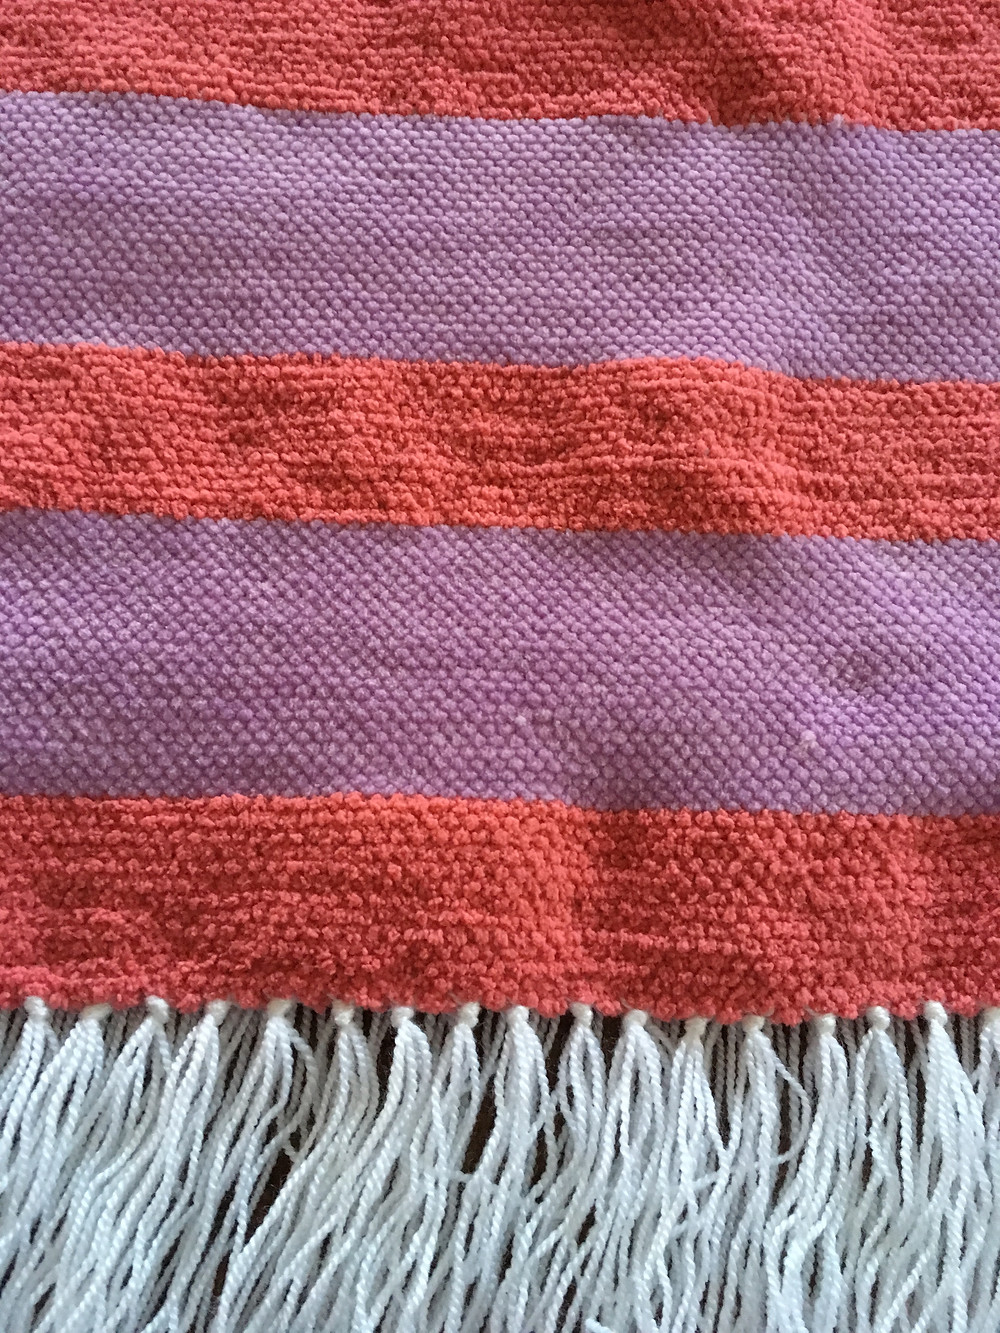 Close up of stripes and fringe on Baby Blanket